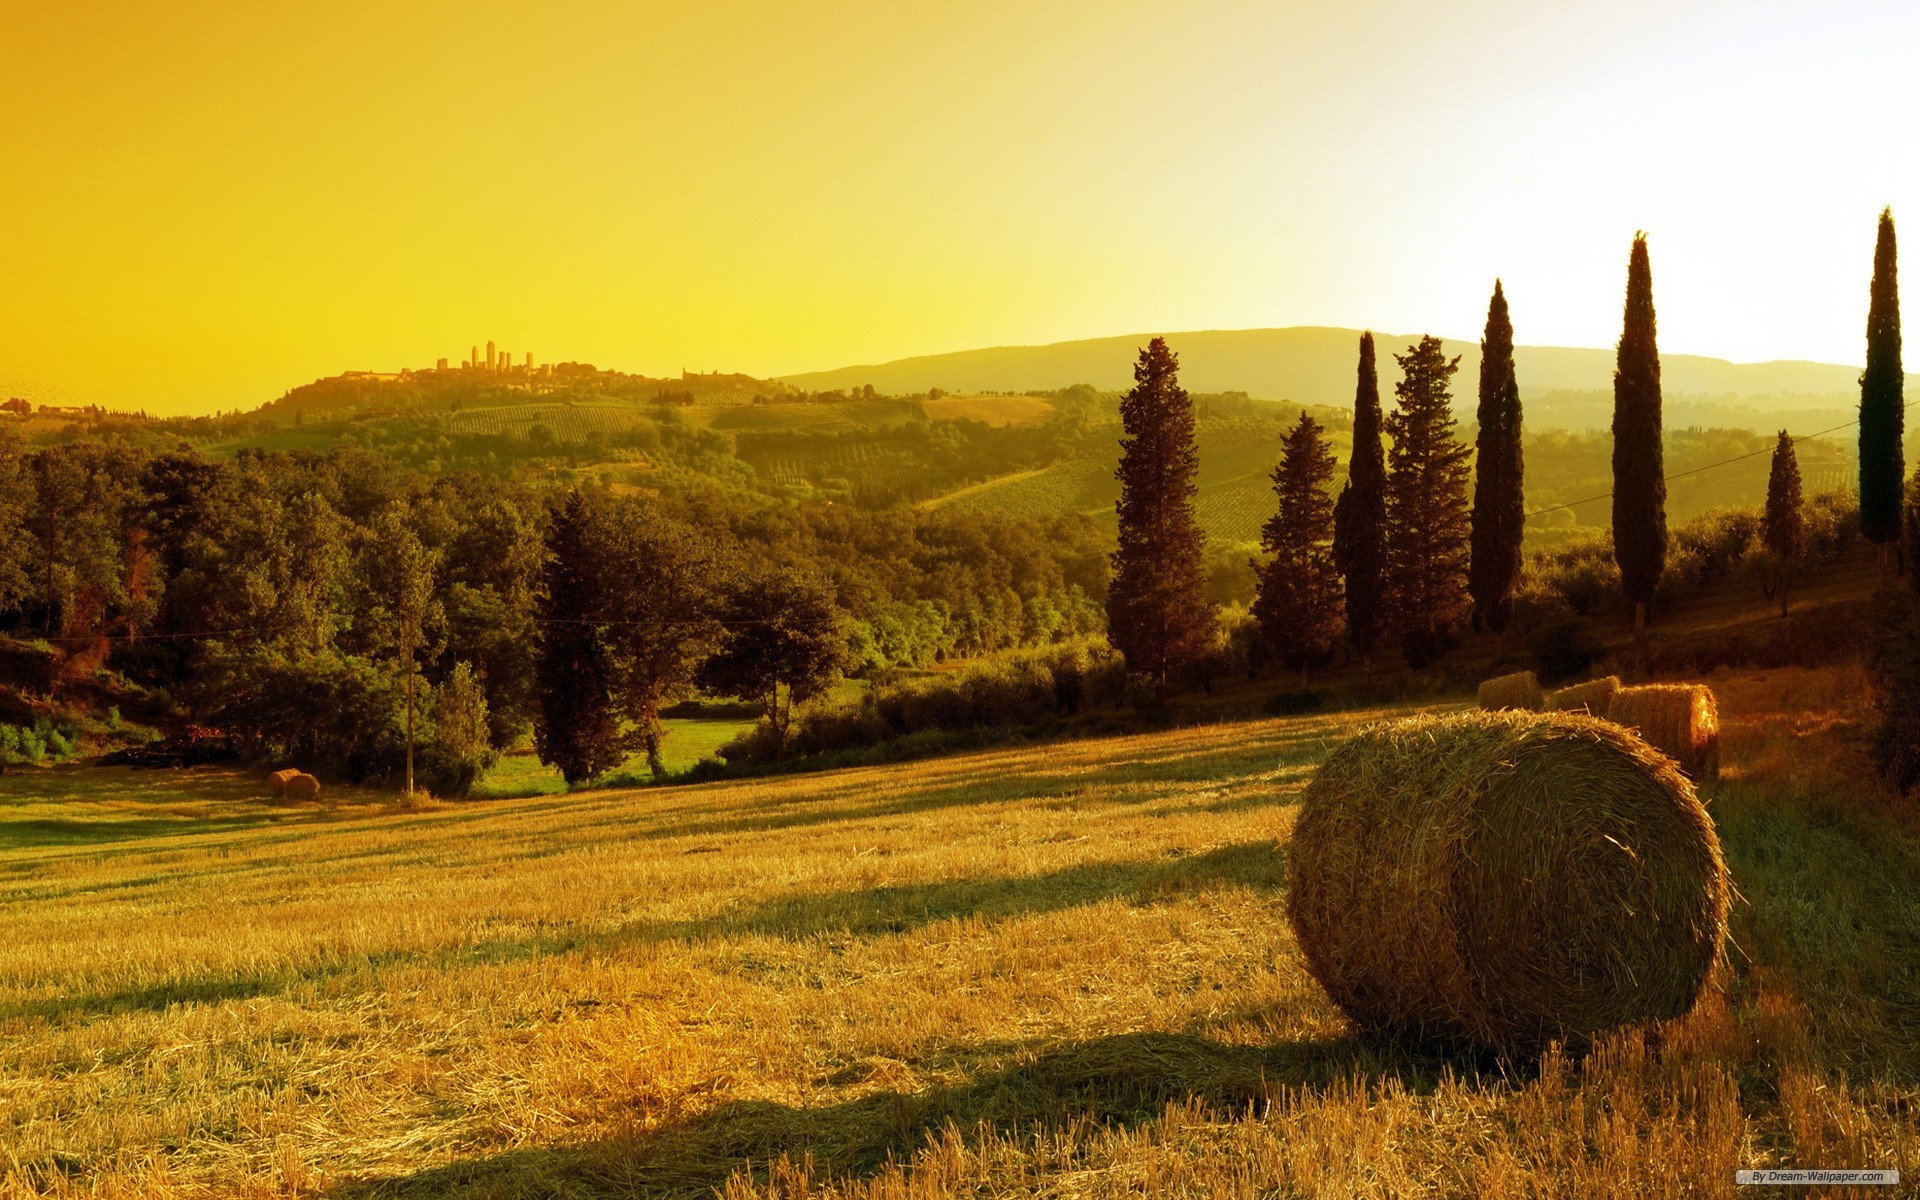 Free Nature wallpaper - Tuscany wallpaper - 1920x1200 wallpaper - Index 16